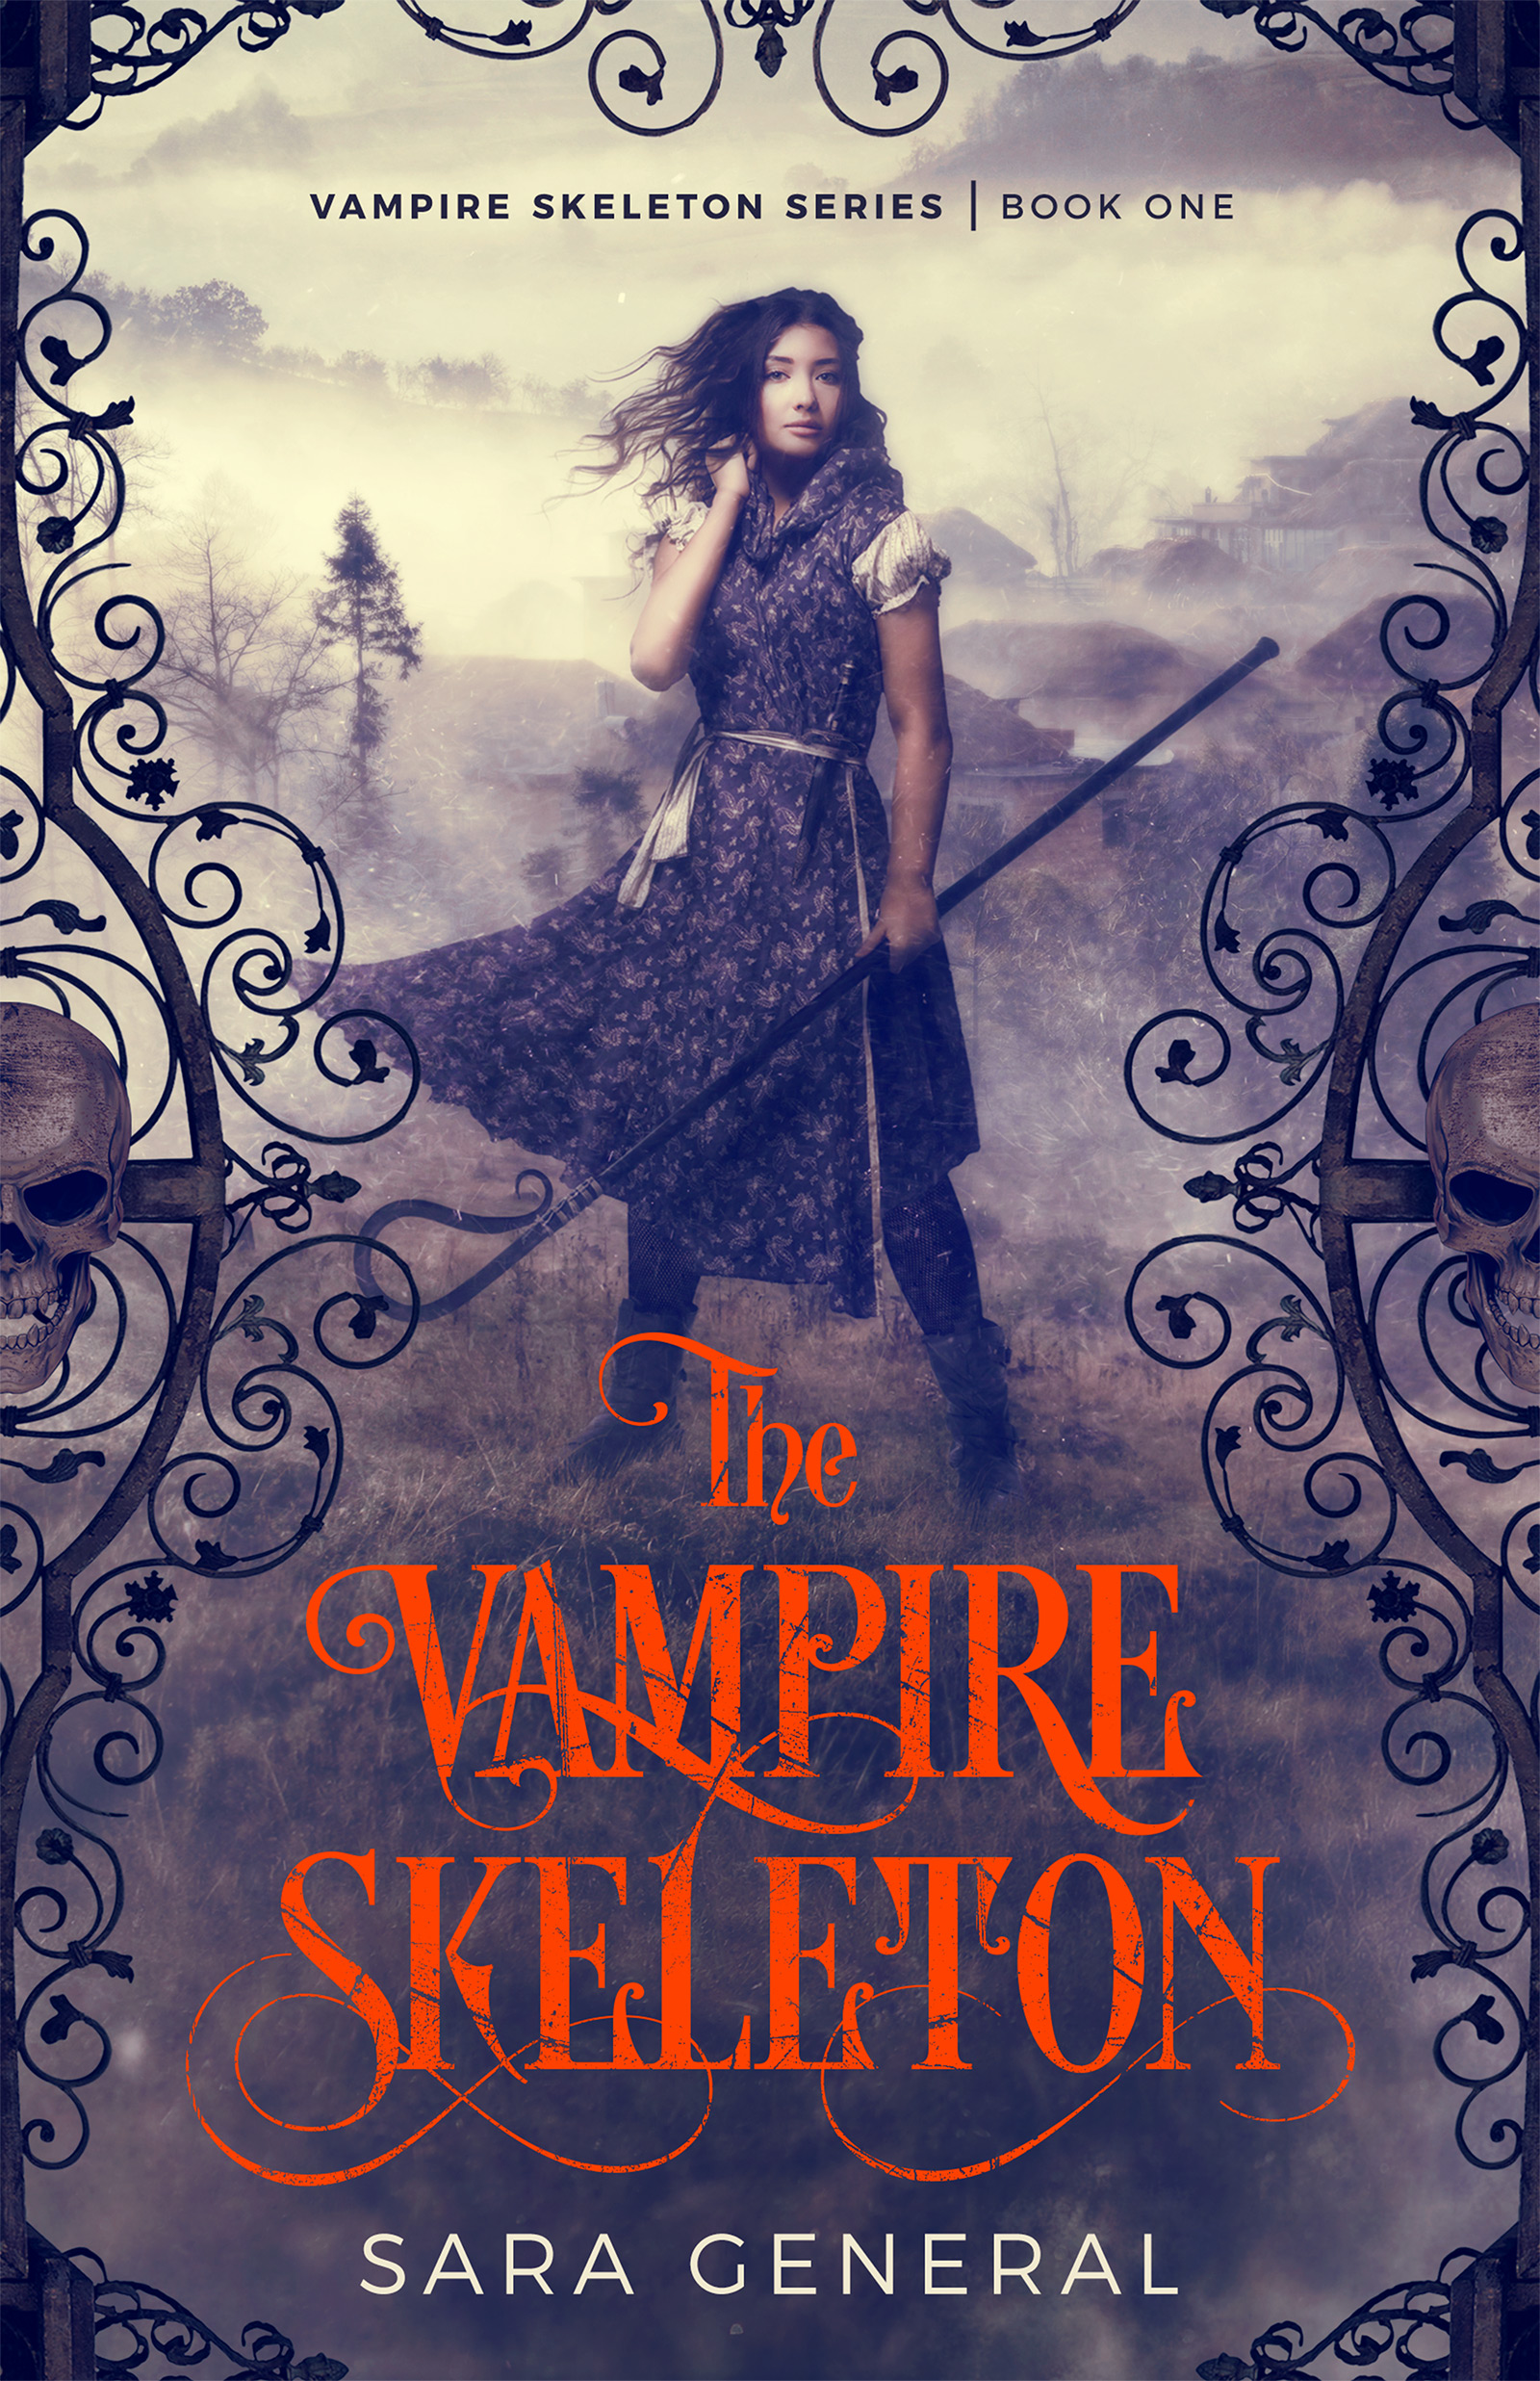 The-Vampire-Skeleton-Ebook.jpg